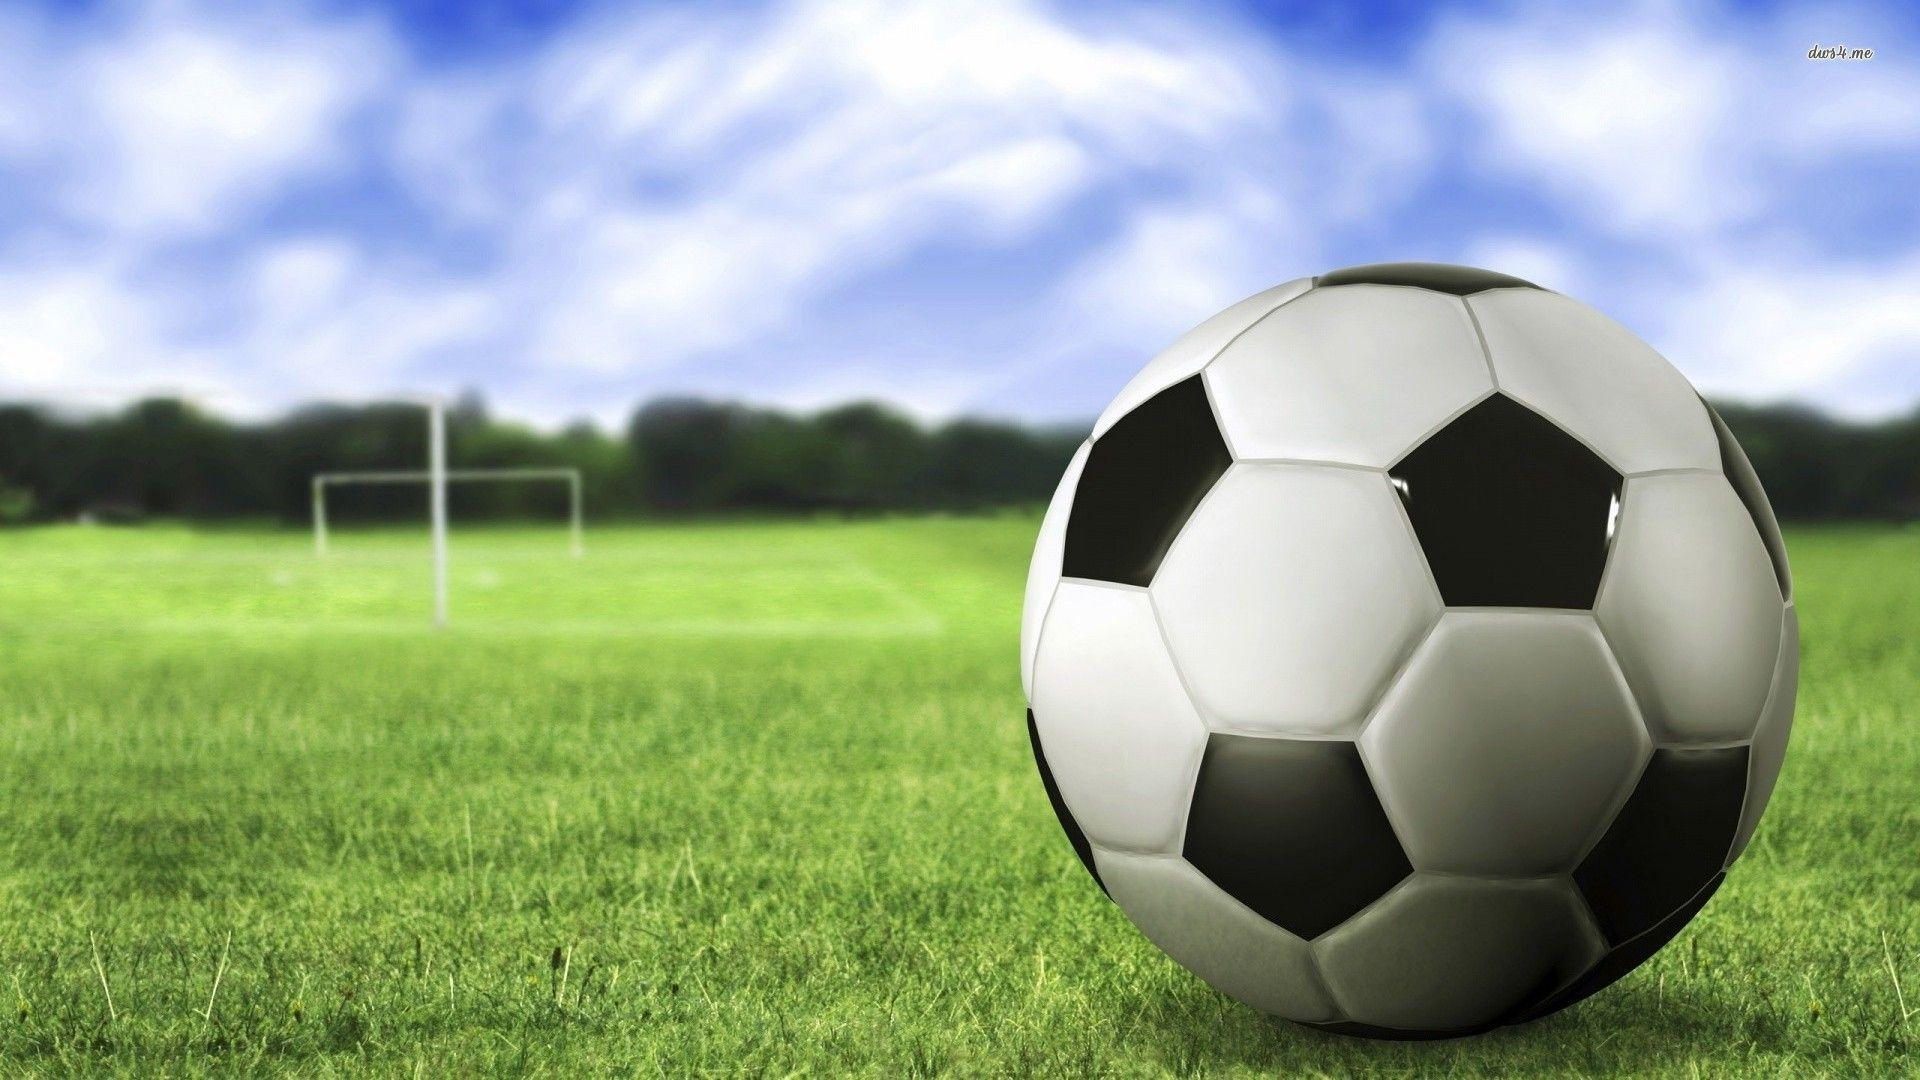 Soccer Ball Wallpapers - Wallpaper Cave